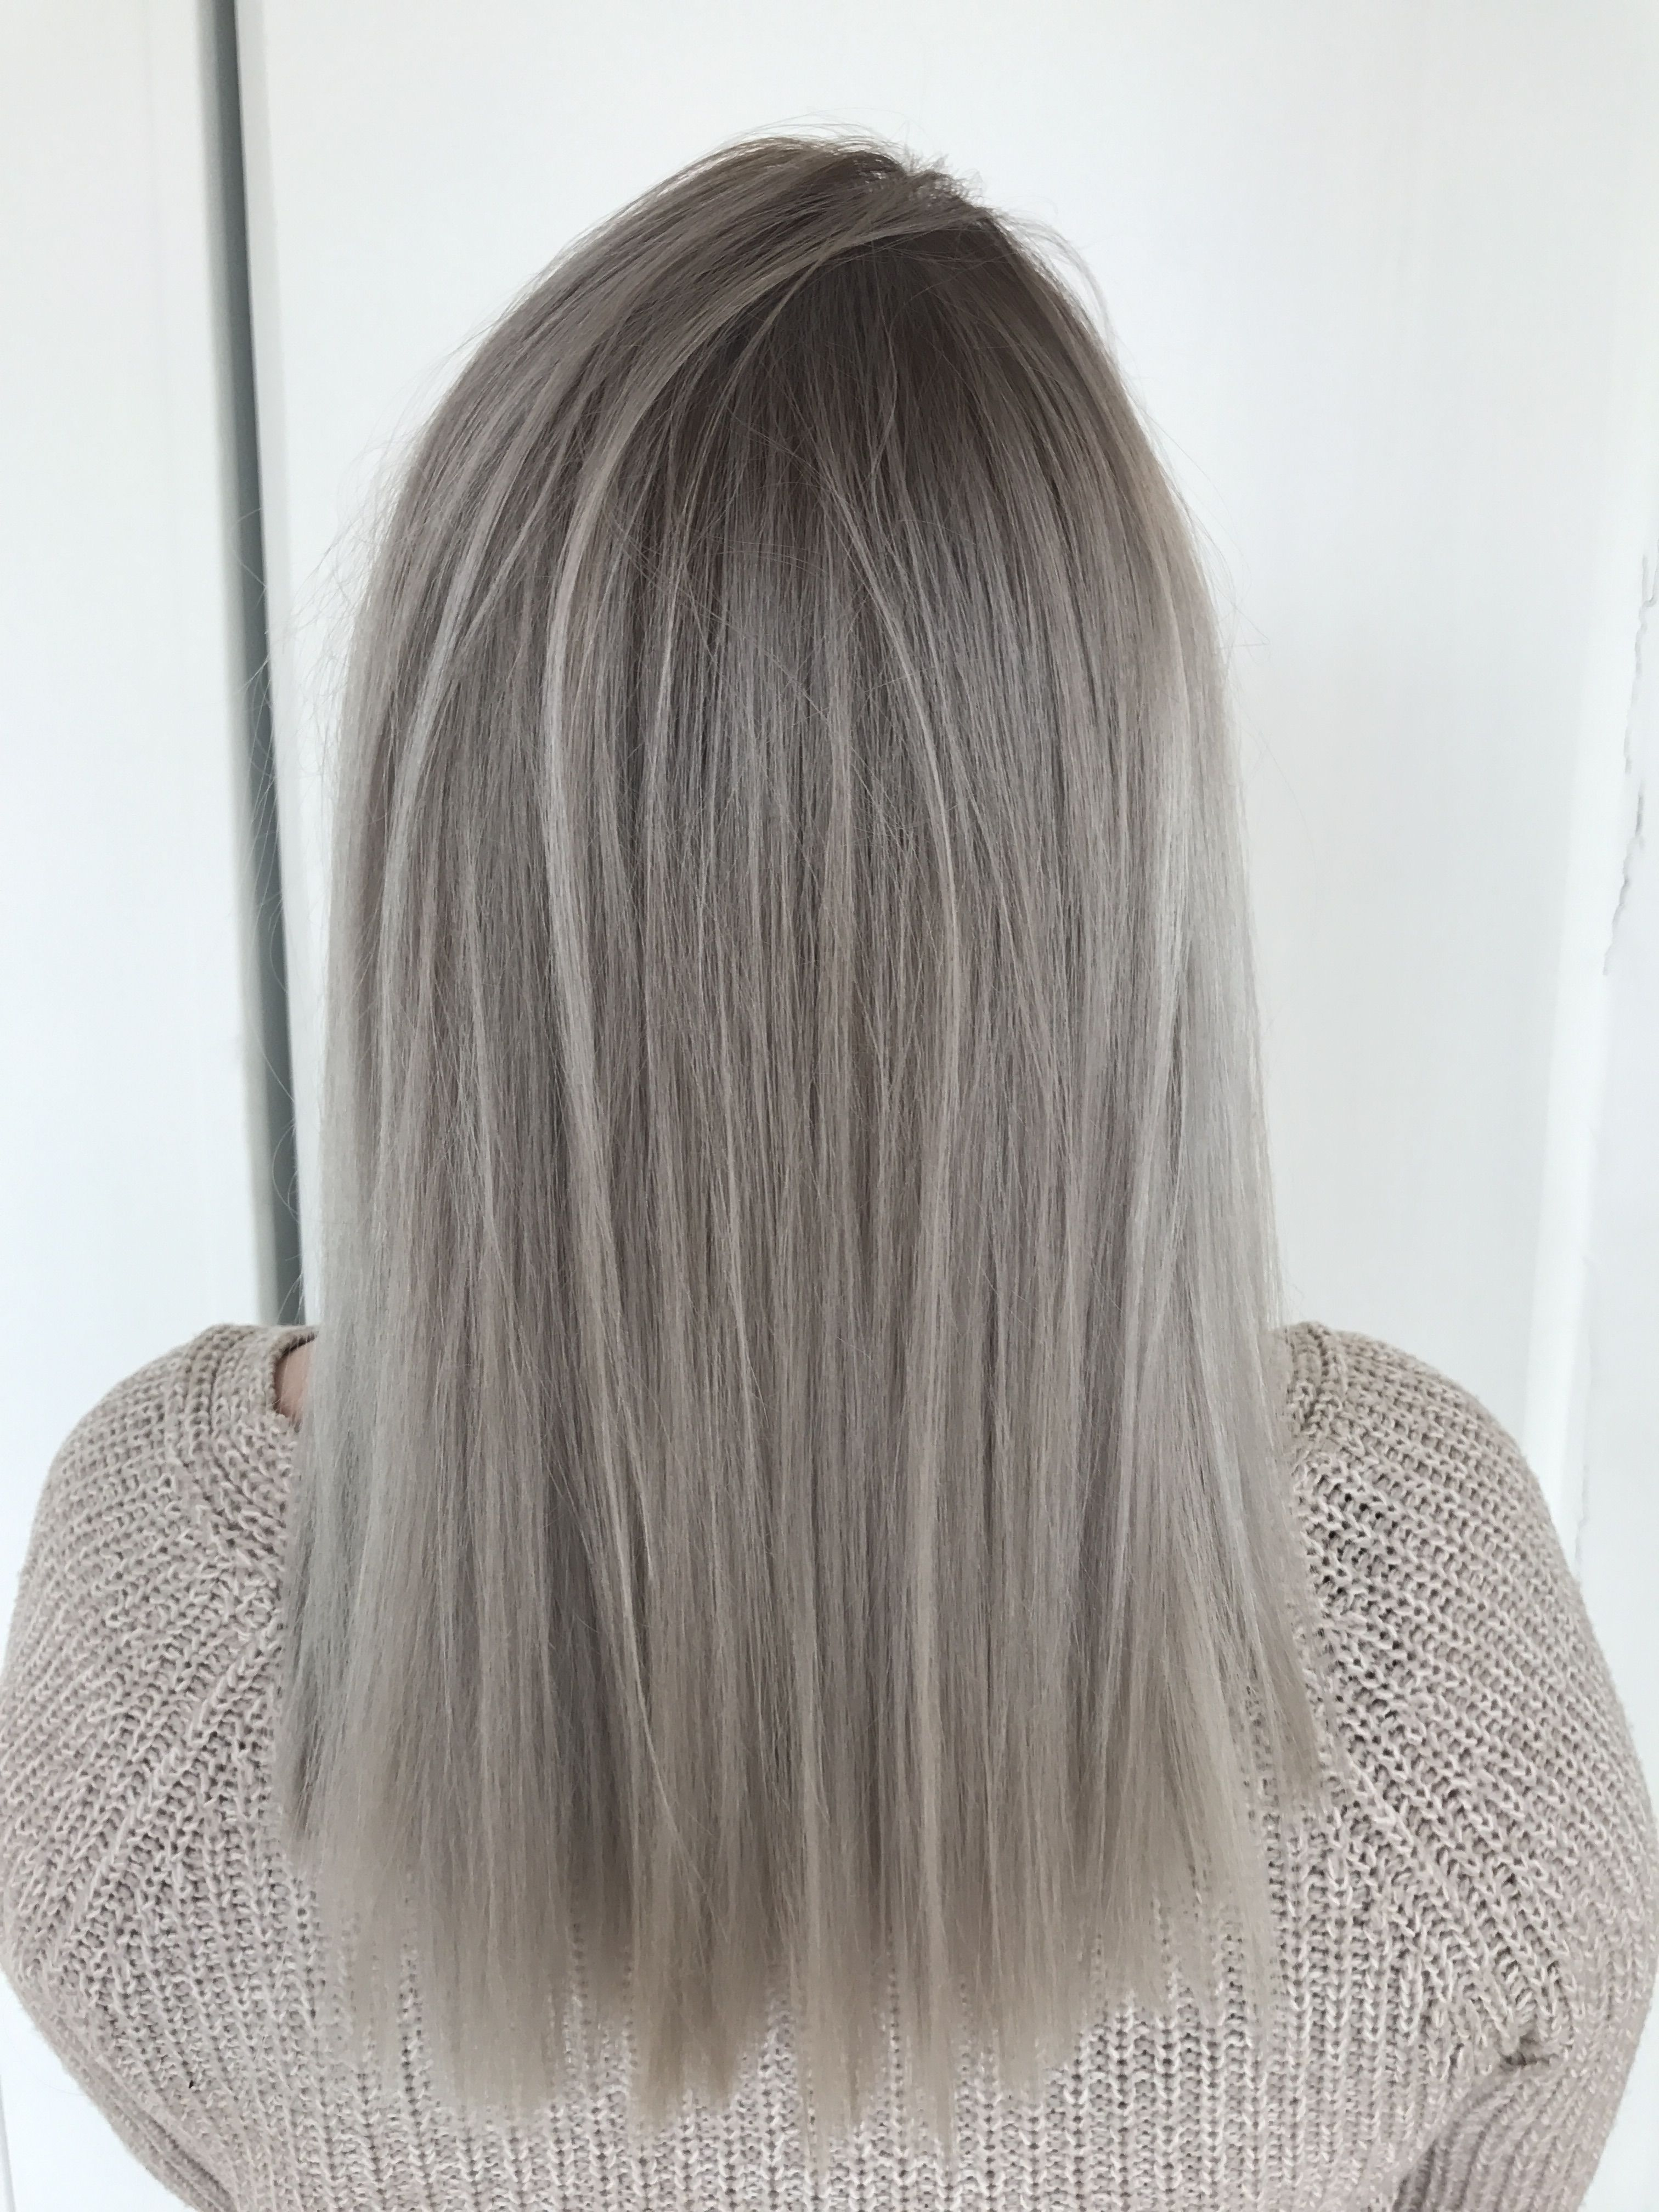 Grey Haircolor Blonde Darker Roots Grey Blonde Hair Blonde Roots Grey Hair Color